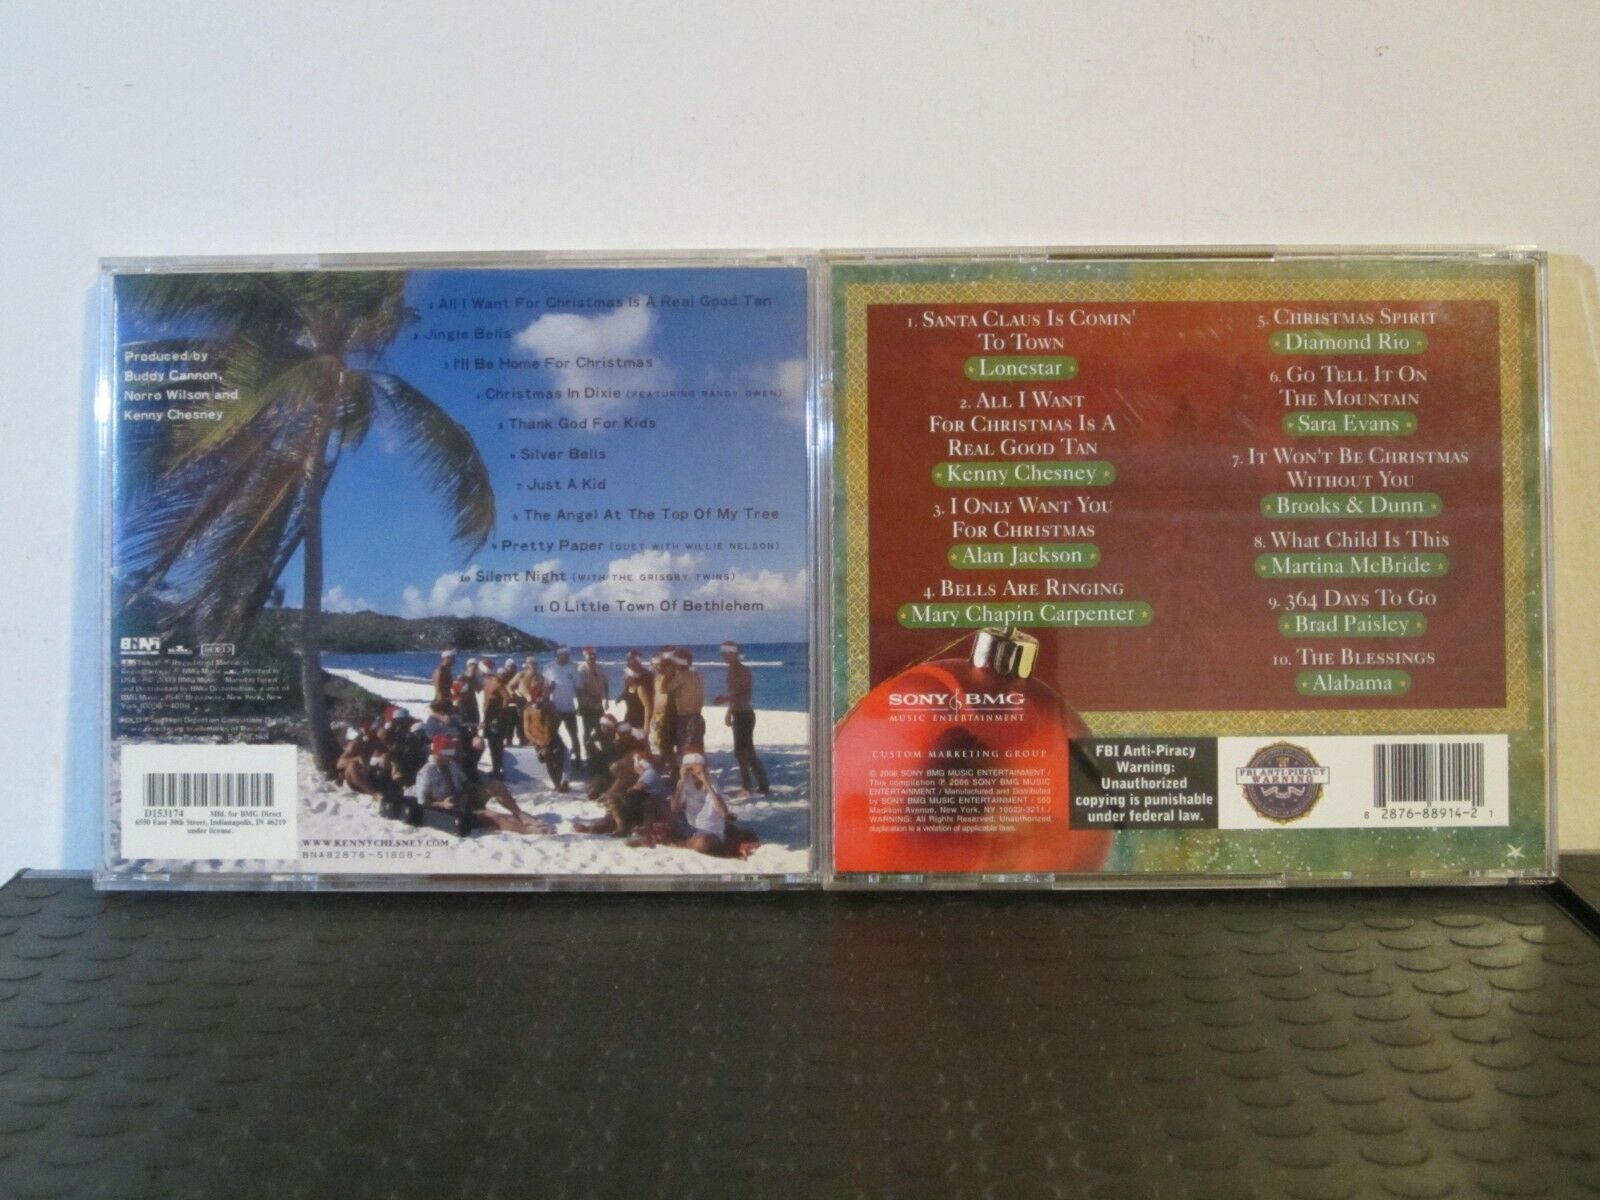 All I Want for Christmas Is a Real Good Tan by Kenny Chesney (CD ...